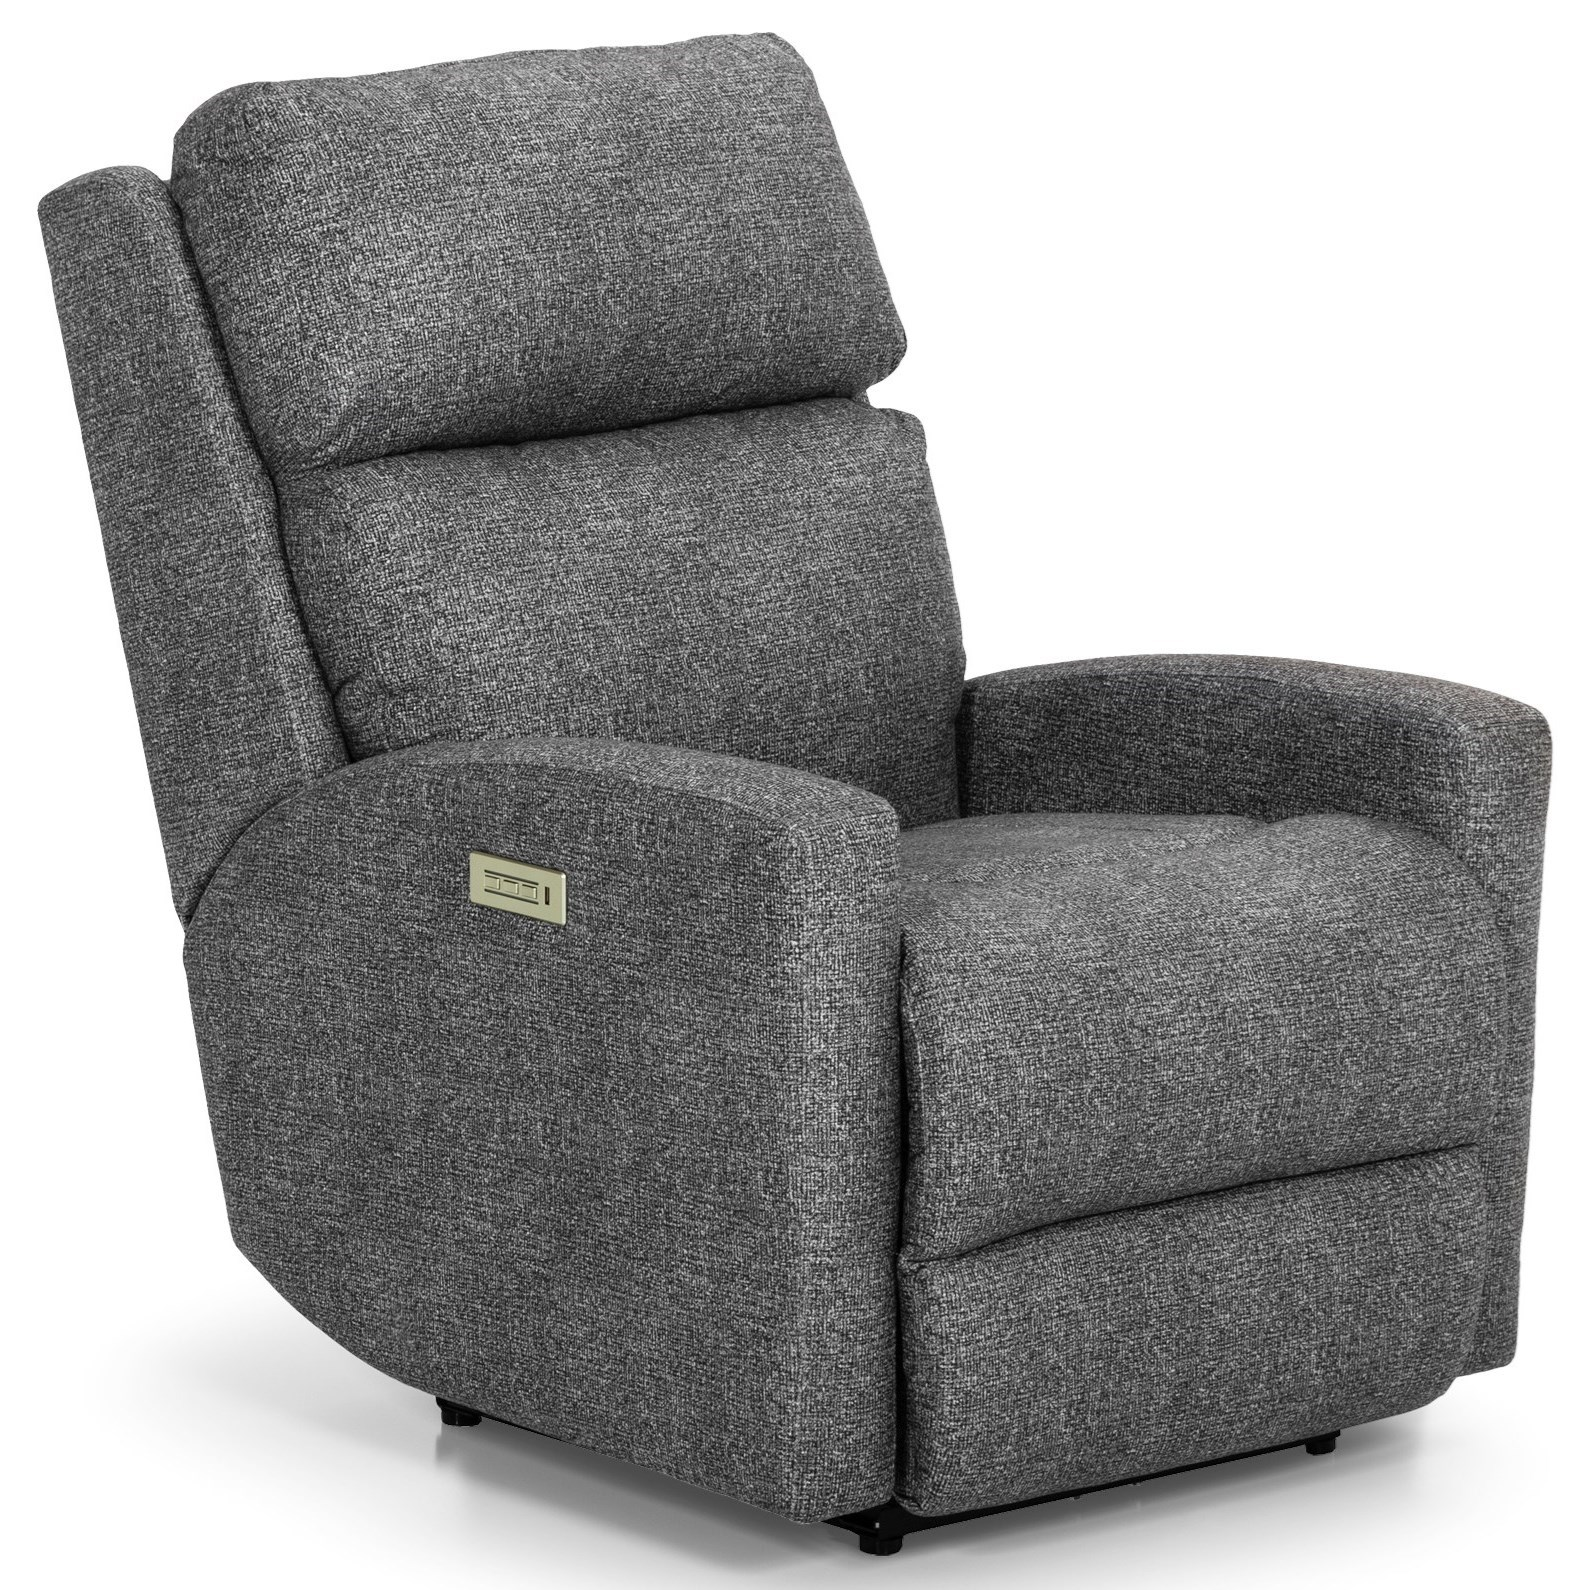 857 Power Reclining Chair w/ Pwr Head & Lumbar by Sunset Home at Sadler's Home Furnishings